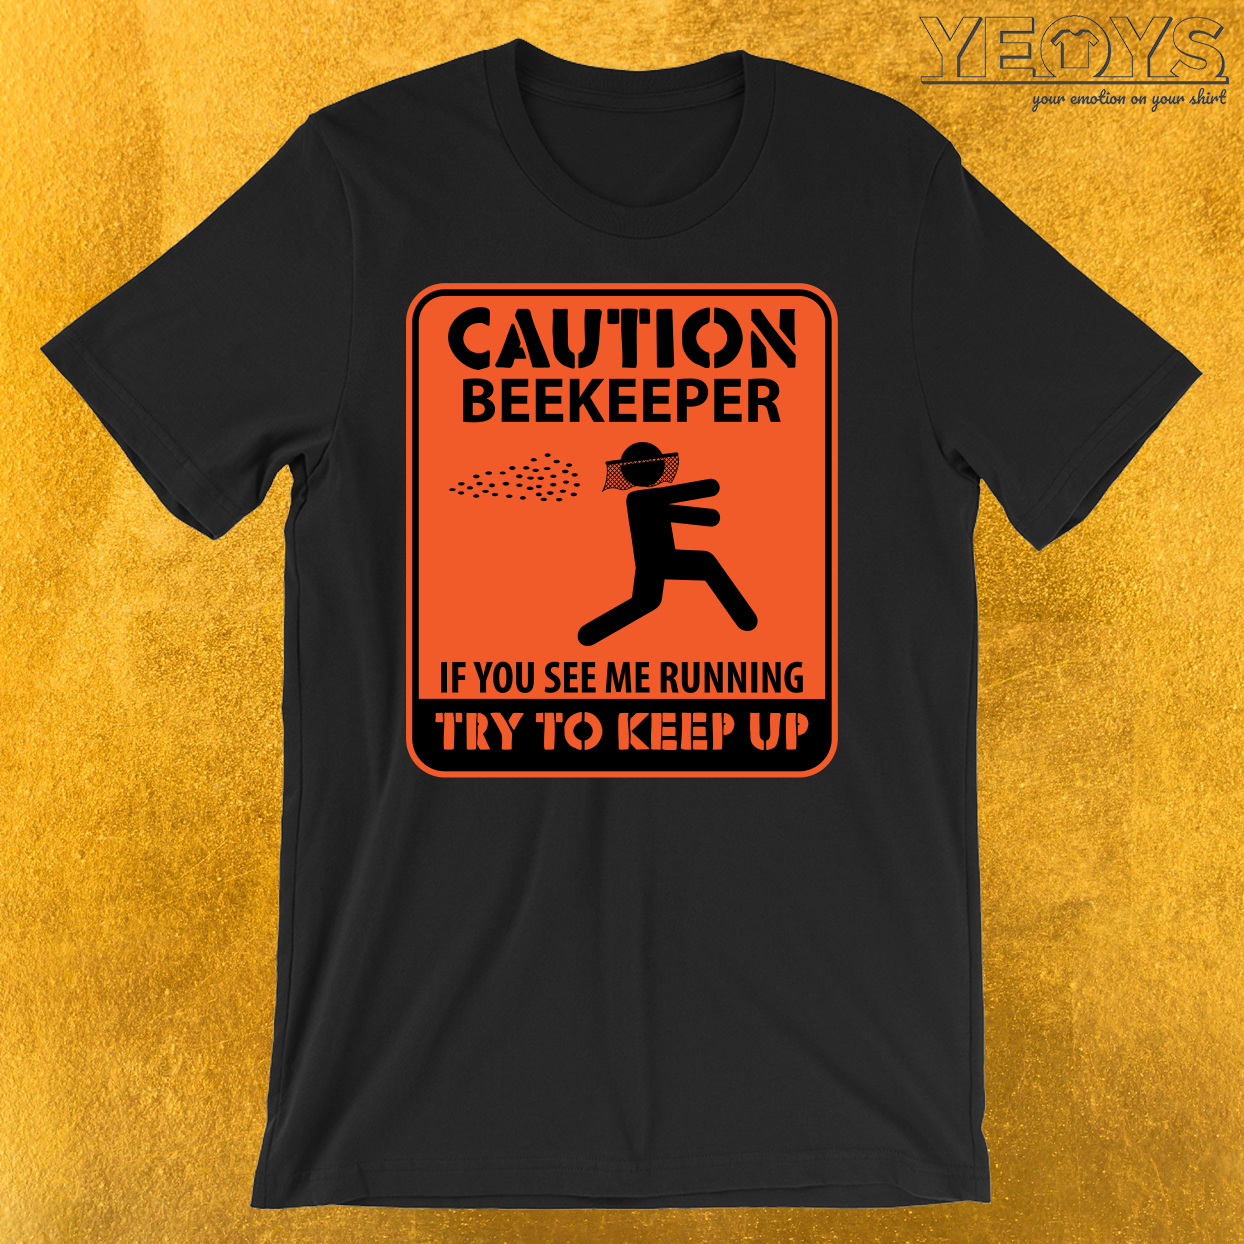 Caution Beekeeper If You See Me Running T-Shirt